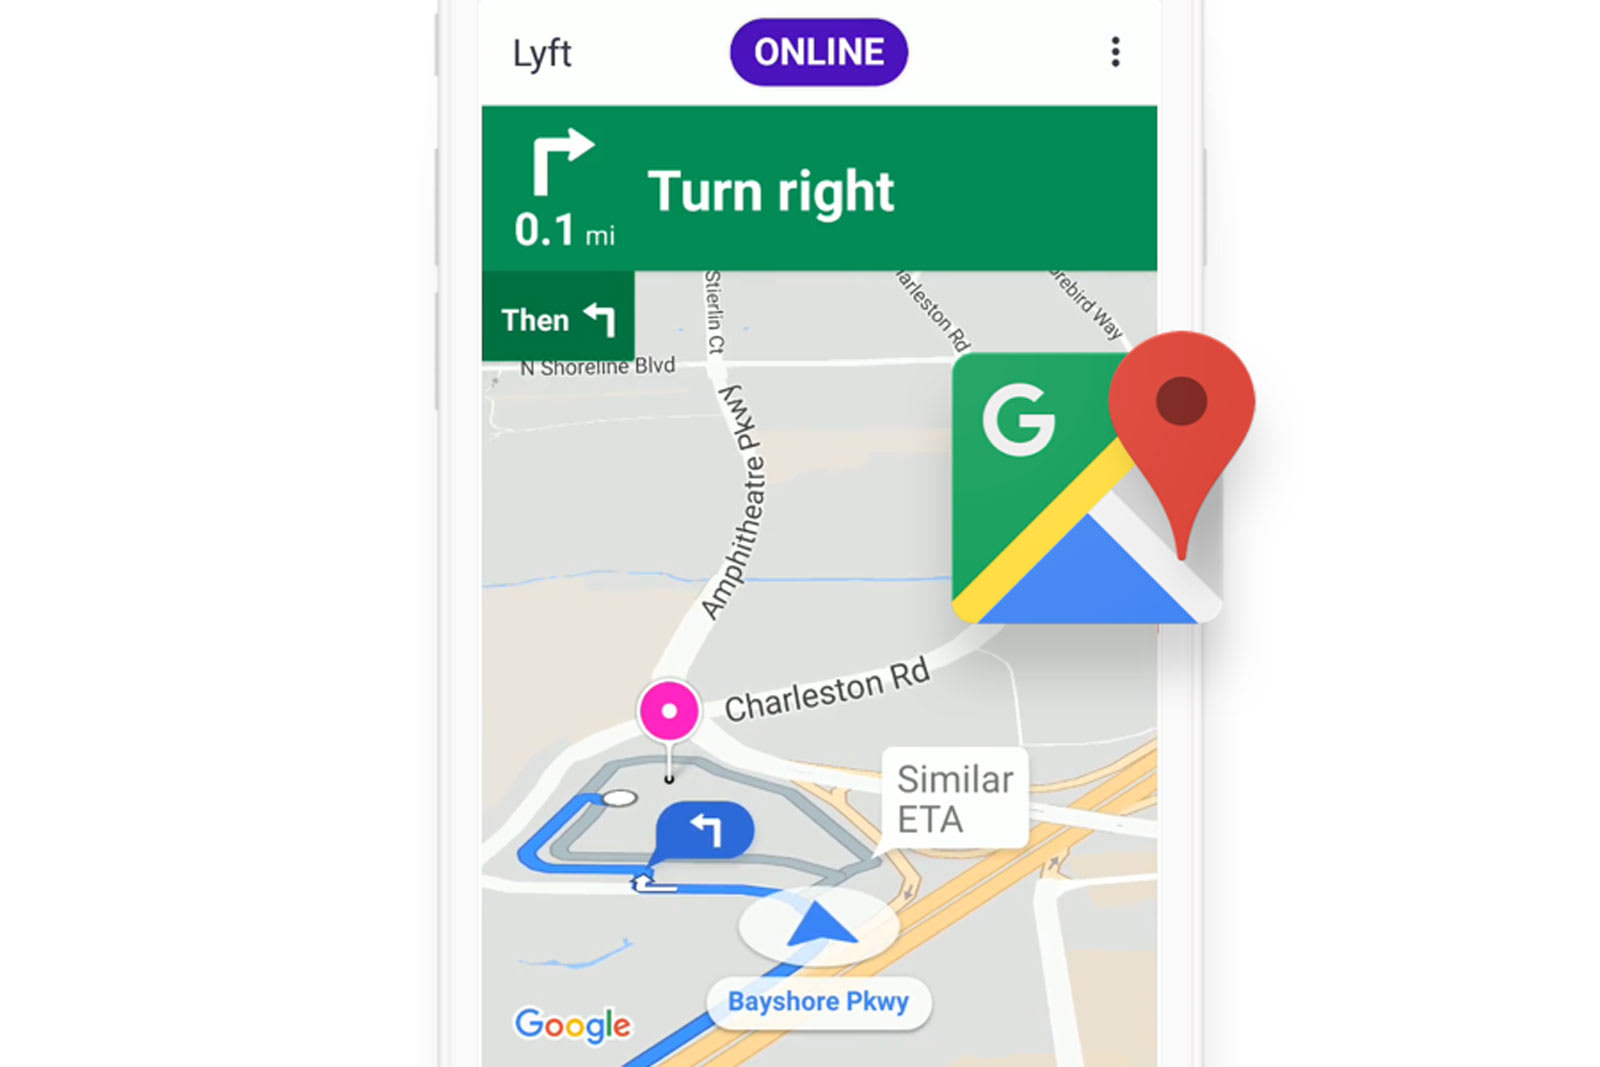 Lyft drivers won't have to switch apps to use Google Maps on google map art, google earth, google world app, gasbuddy app, google texting app, google app icon, google navigation app, google search app, weather app, google calendar, google map turkey, google map from to, evernote app, traductor google app, google mapquest, google docs app, google circles app, google books app, craigslist app,